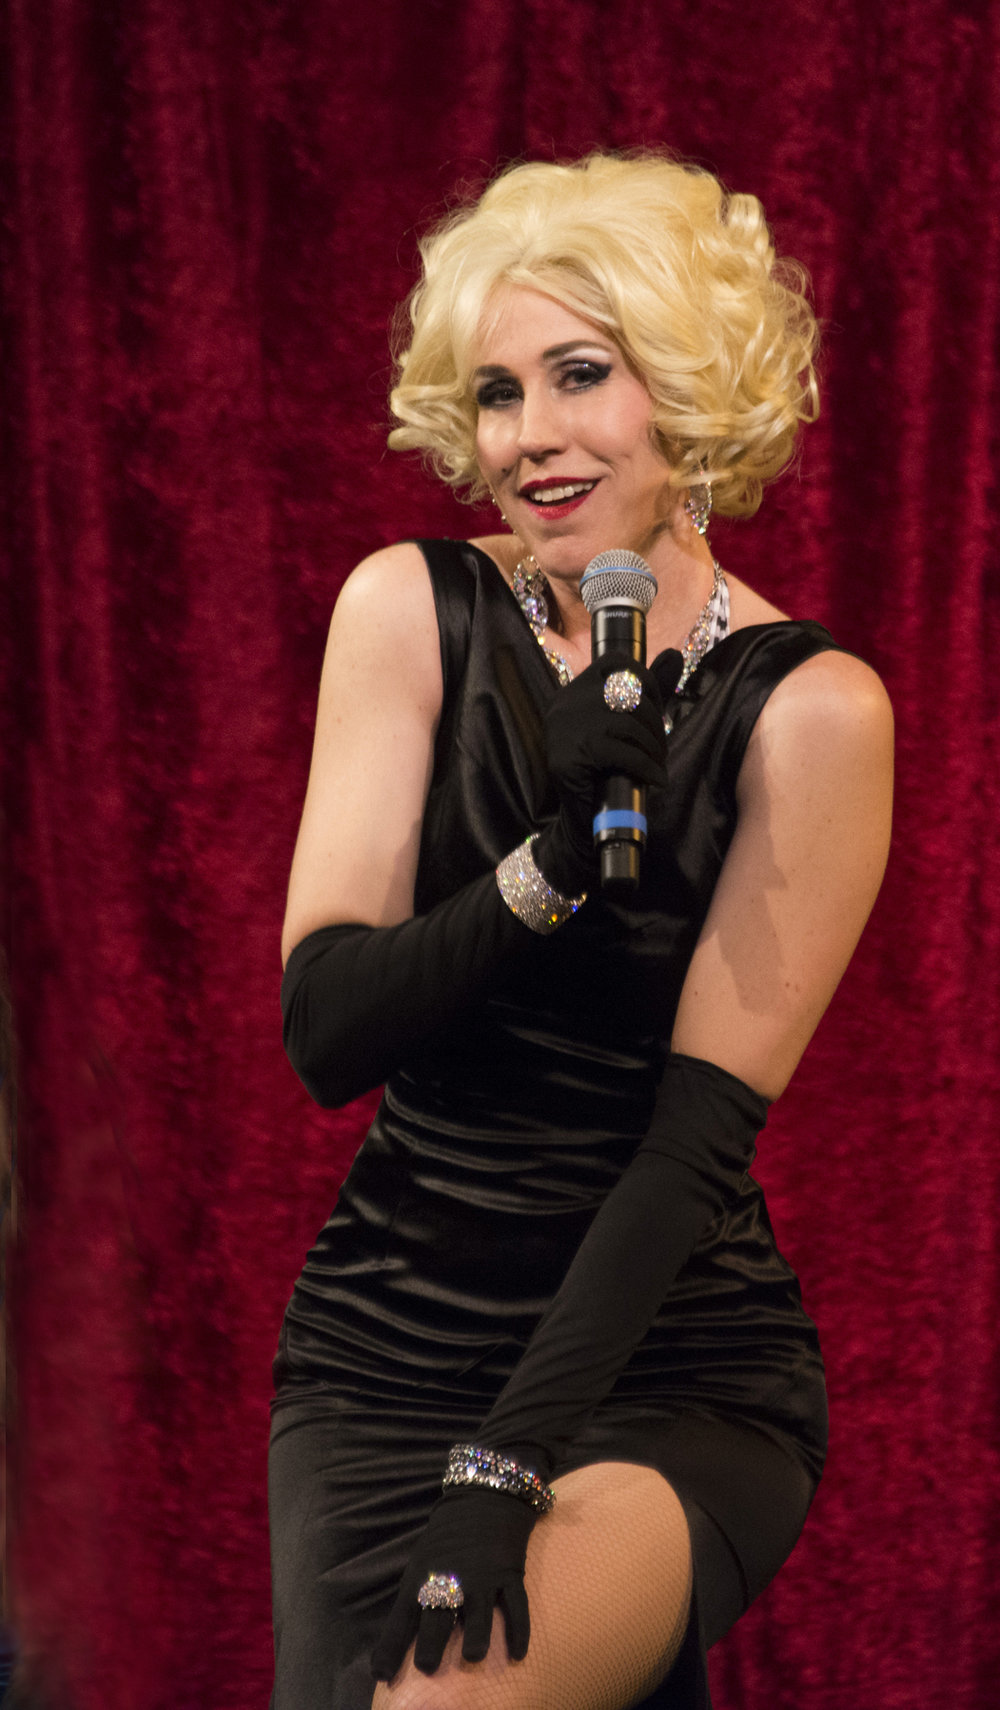 """- """"Creating an experience, a night out, was my foremost goal,"""" says Mellilah, the producer and director of the Over the Pop: A Cabaret. """"My intention was to create light-hearted, classic entertainment with non-stop dancing, singing and comedy — a fast-paced cabaret-style show performed in an airy space where my guests could move about, socialize and have a drink! It's classy adult entertainment and unlike a traditional burlesque production, the clothes stay on."""""""